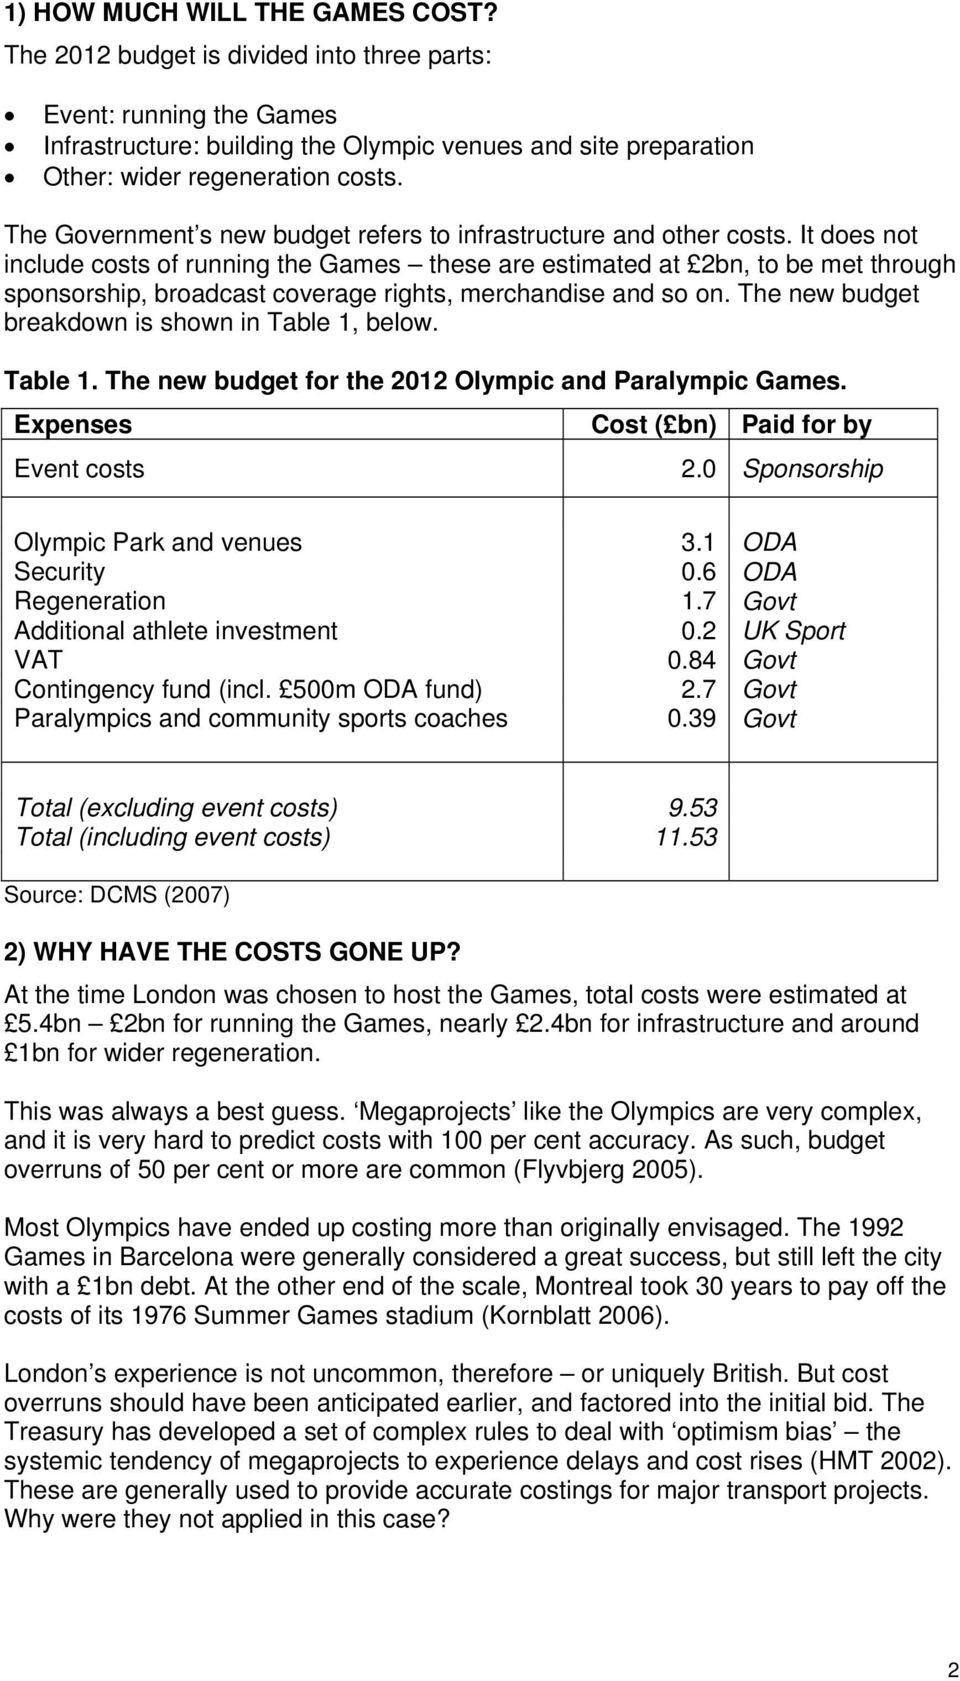 It does not include costs of running the Games these are estimated at 2bn, to be met through sponsorship, broadcast coverage rights, merchandise and so on.